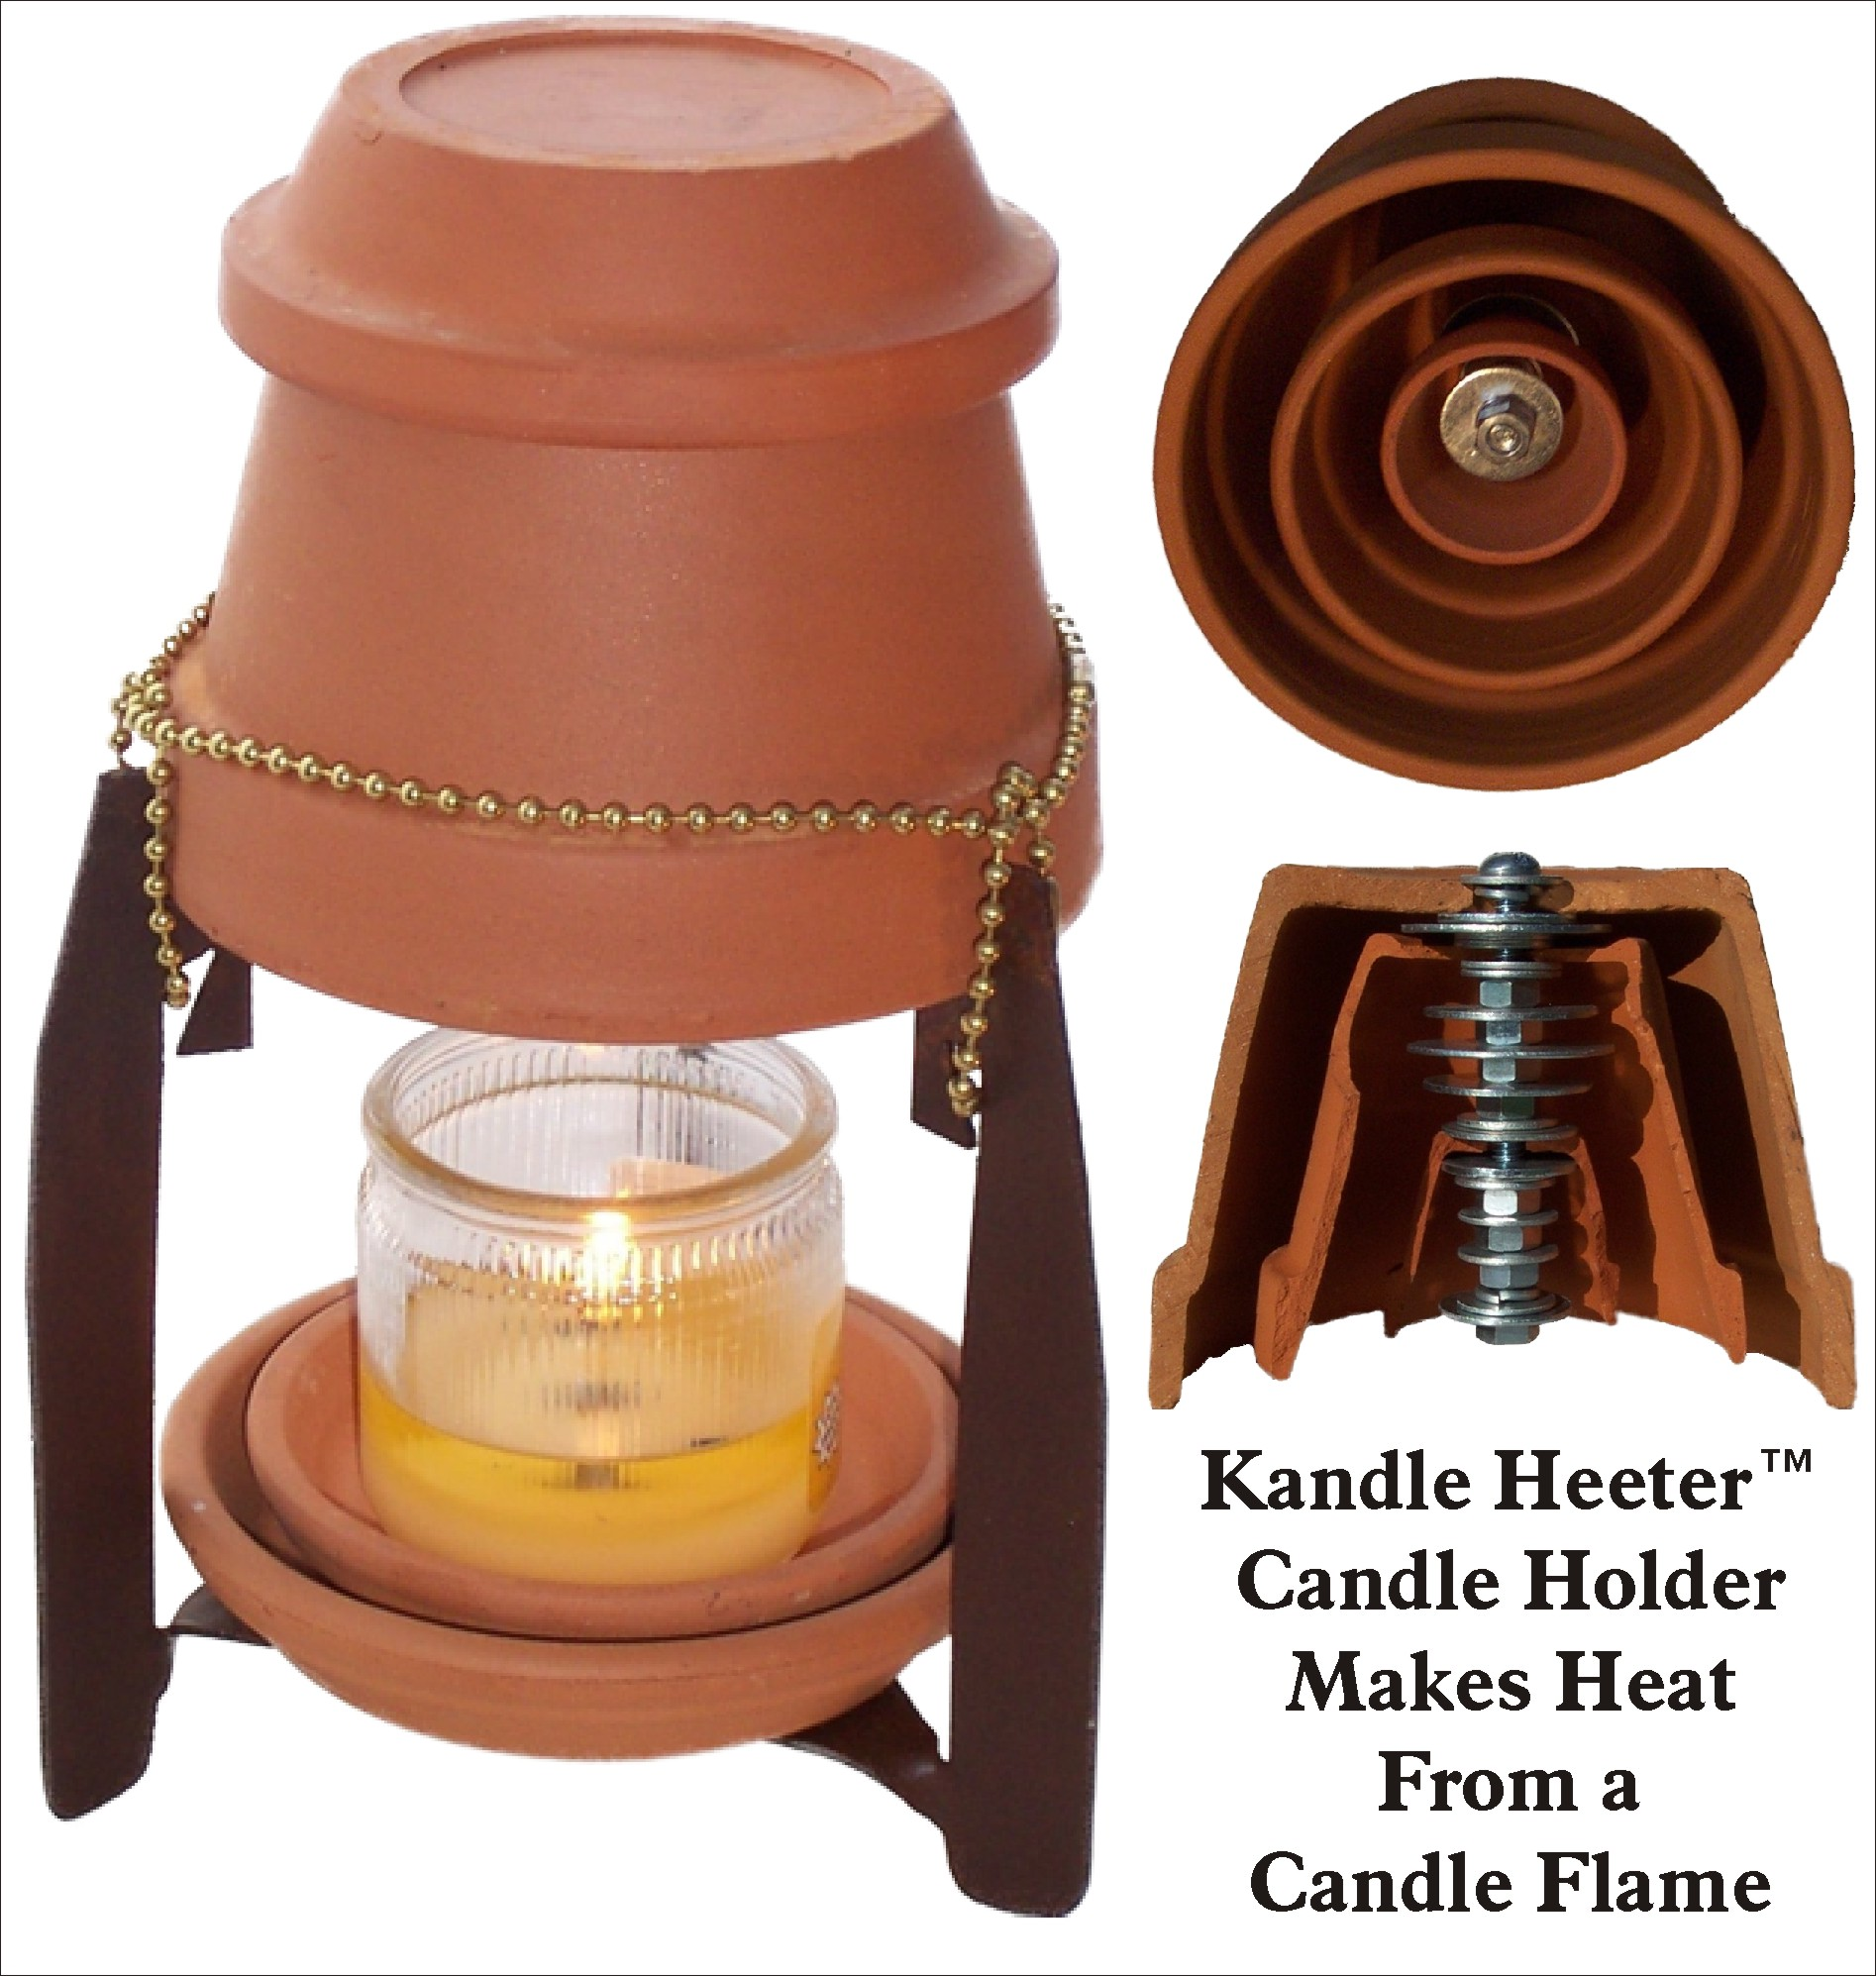 Kandle Heeter How To Heat Up Your Room Using A Candle Build Electronic Blow Out Schematic The Has Been Invented By Doyle Doss Northern California Inventor And Is What It Looks Like Heater